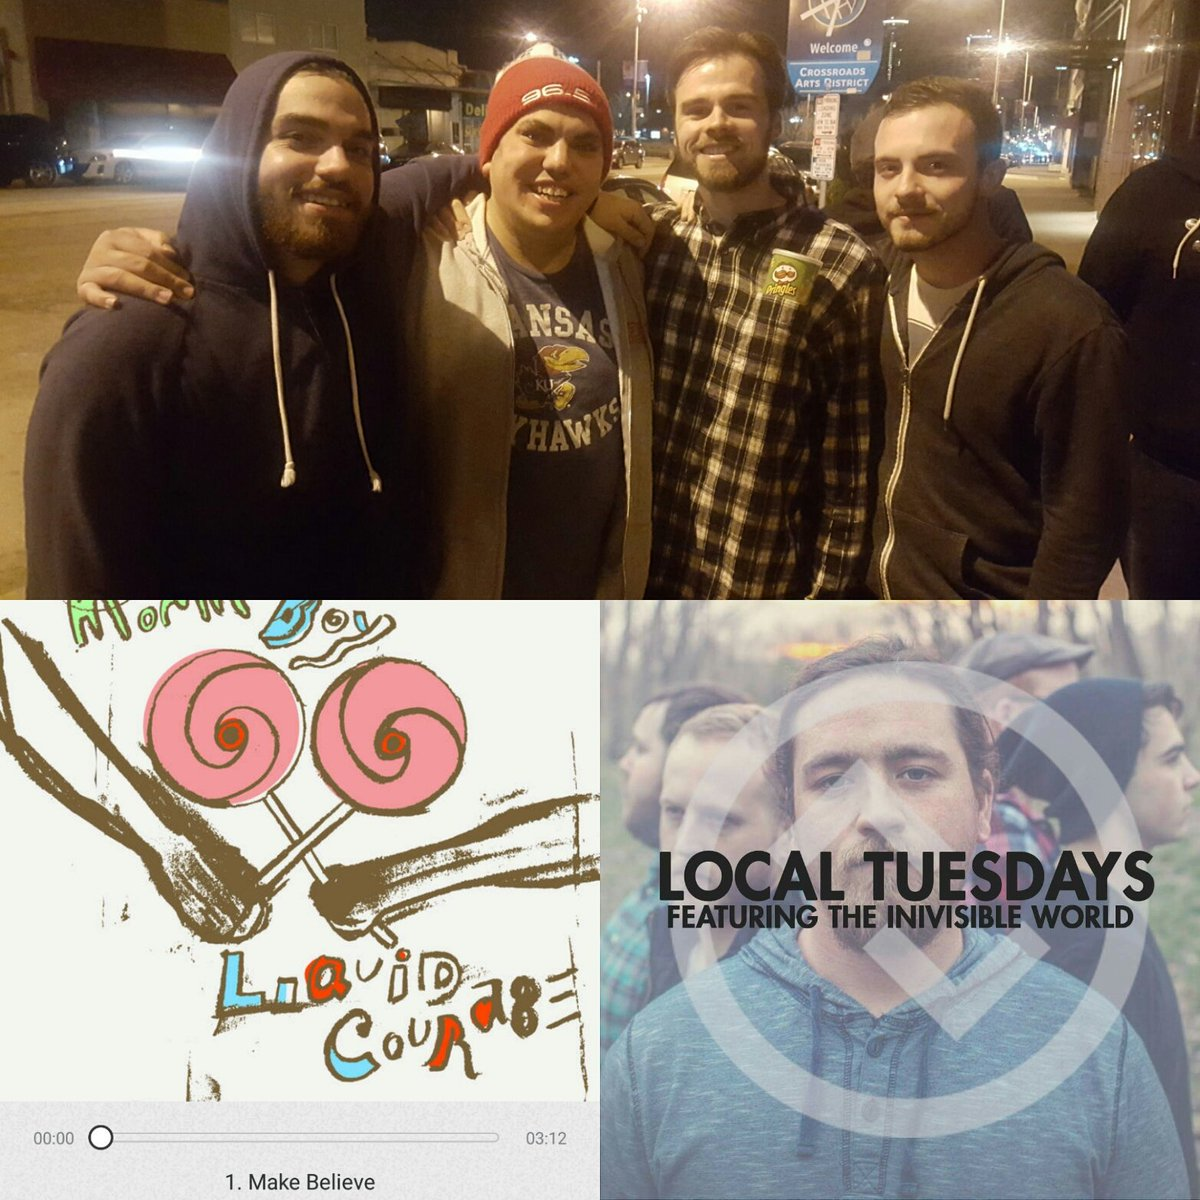 We&#39;re basically throwing a #LocalTuesdays party with @tiwband &amp; a @MommasBoyKC EP listening preview @updownkc tomorrow night! #PartyHard  <br>http://pic.twitter.com/SzrhFLWGkn